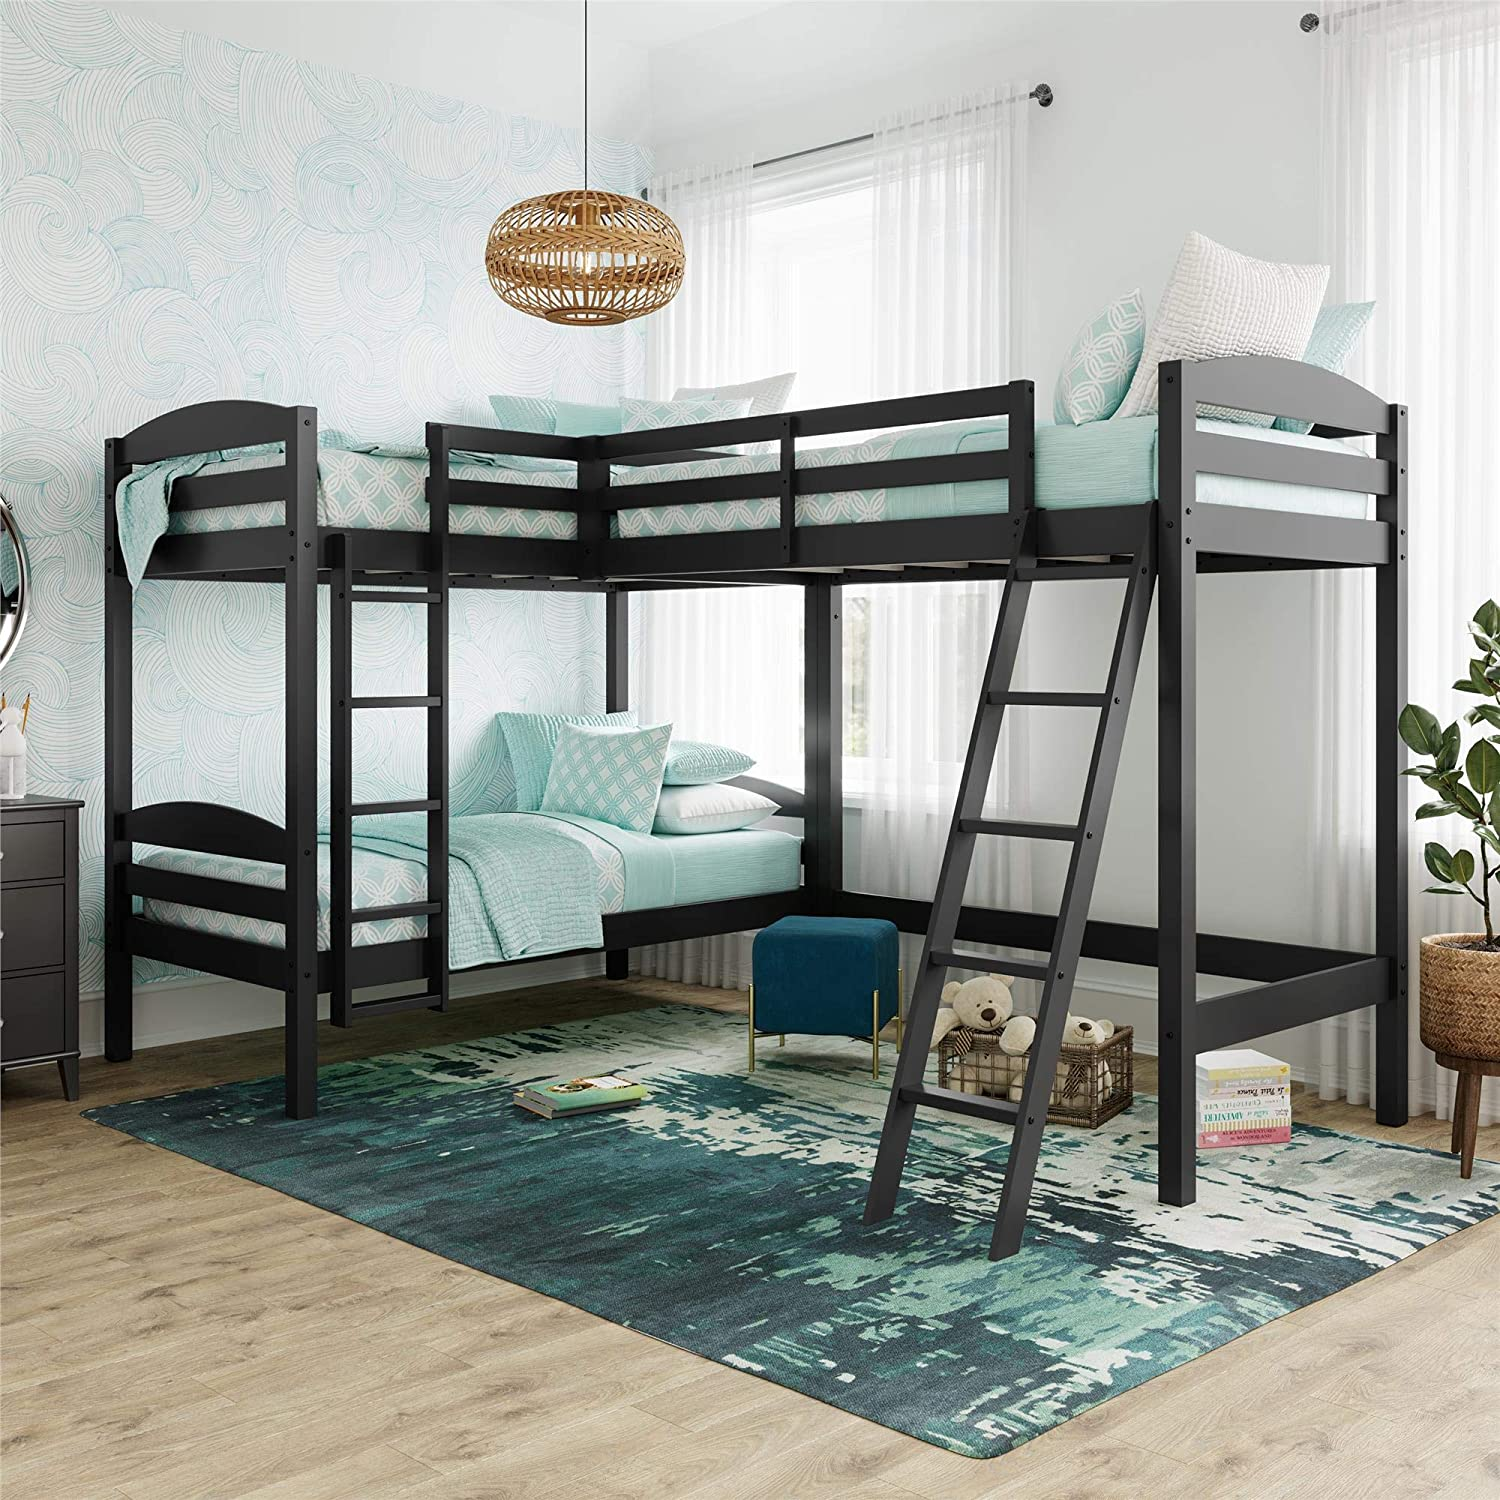 Dorel Living Clearwater Triple Wood Bunk, Twin Size, Black Bed